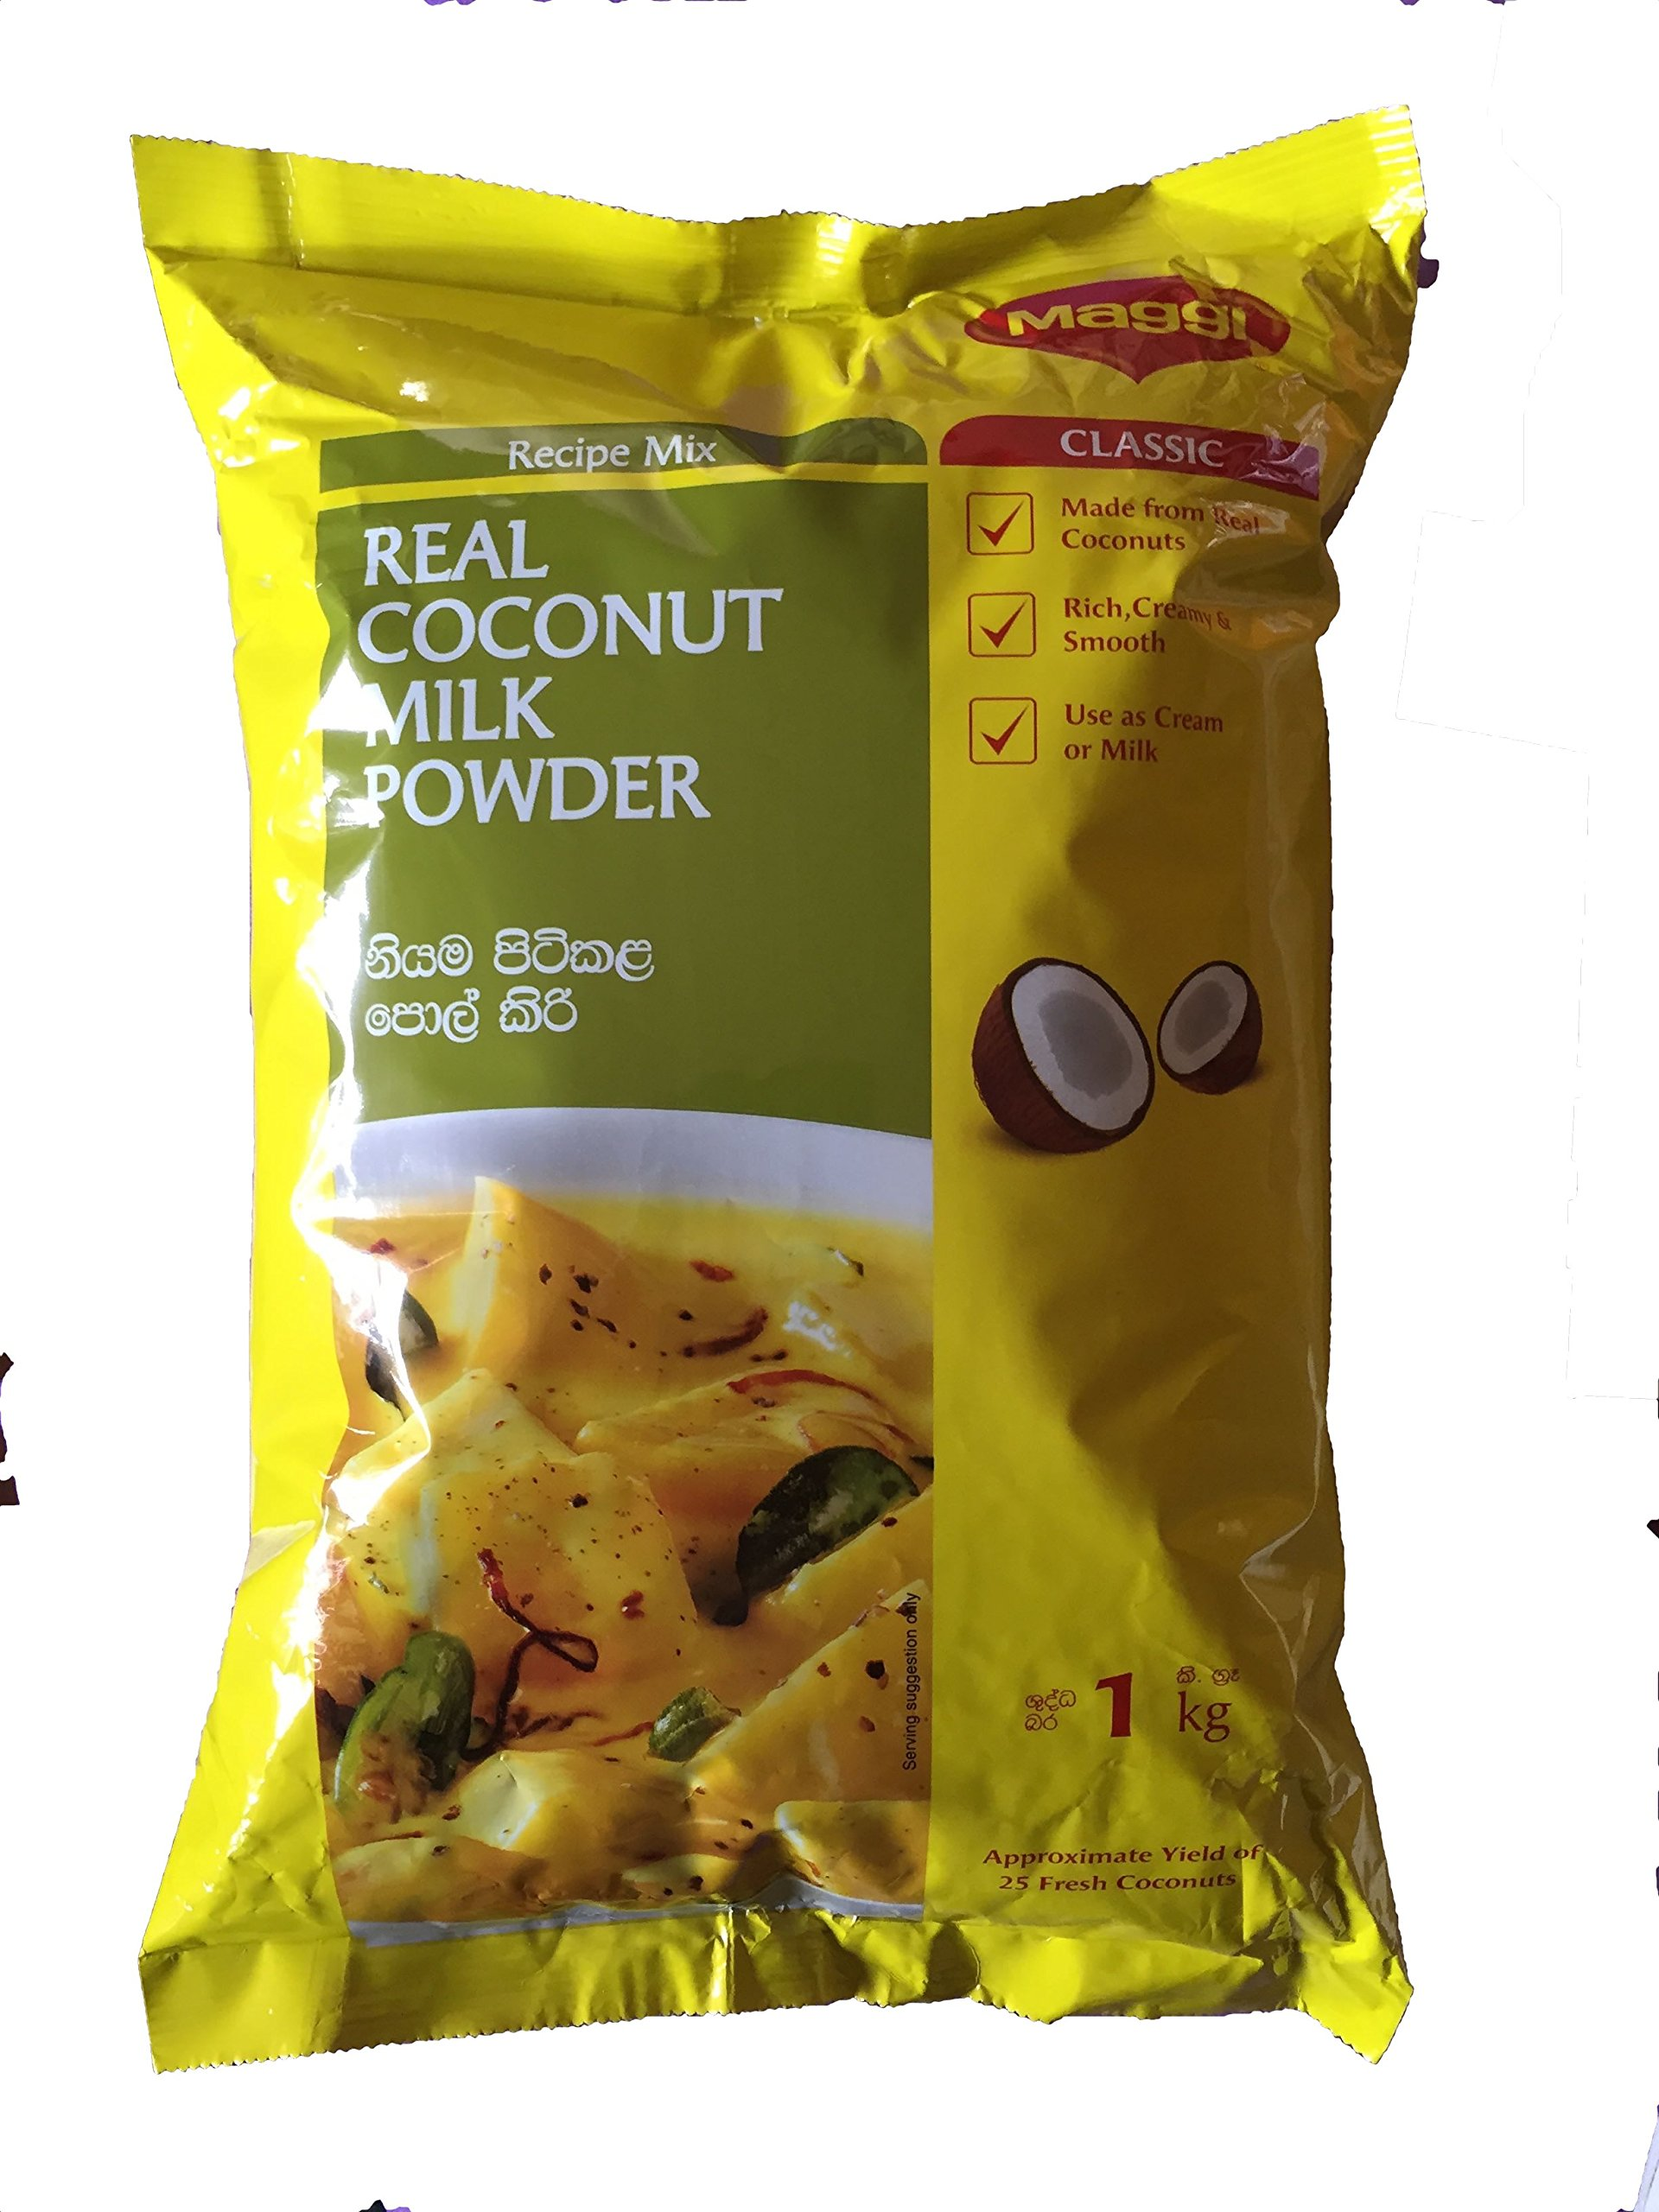 NESTLE - MAGGI Coconut Milk Powder Mix - 1kg Per Bag. MADE FROM SRI LANKA Coconuts